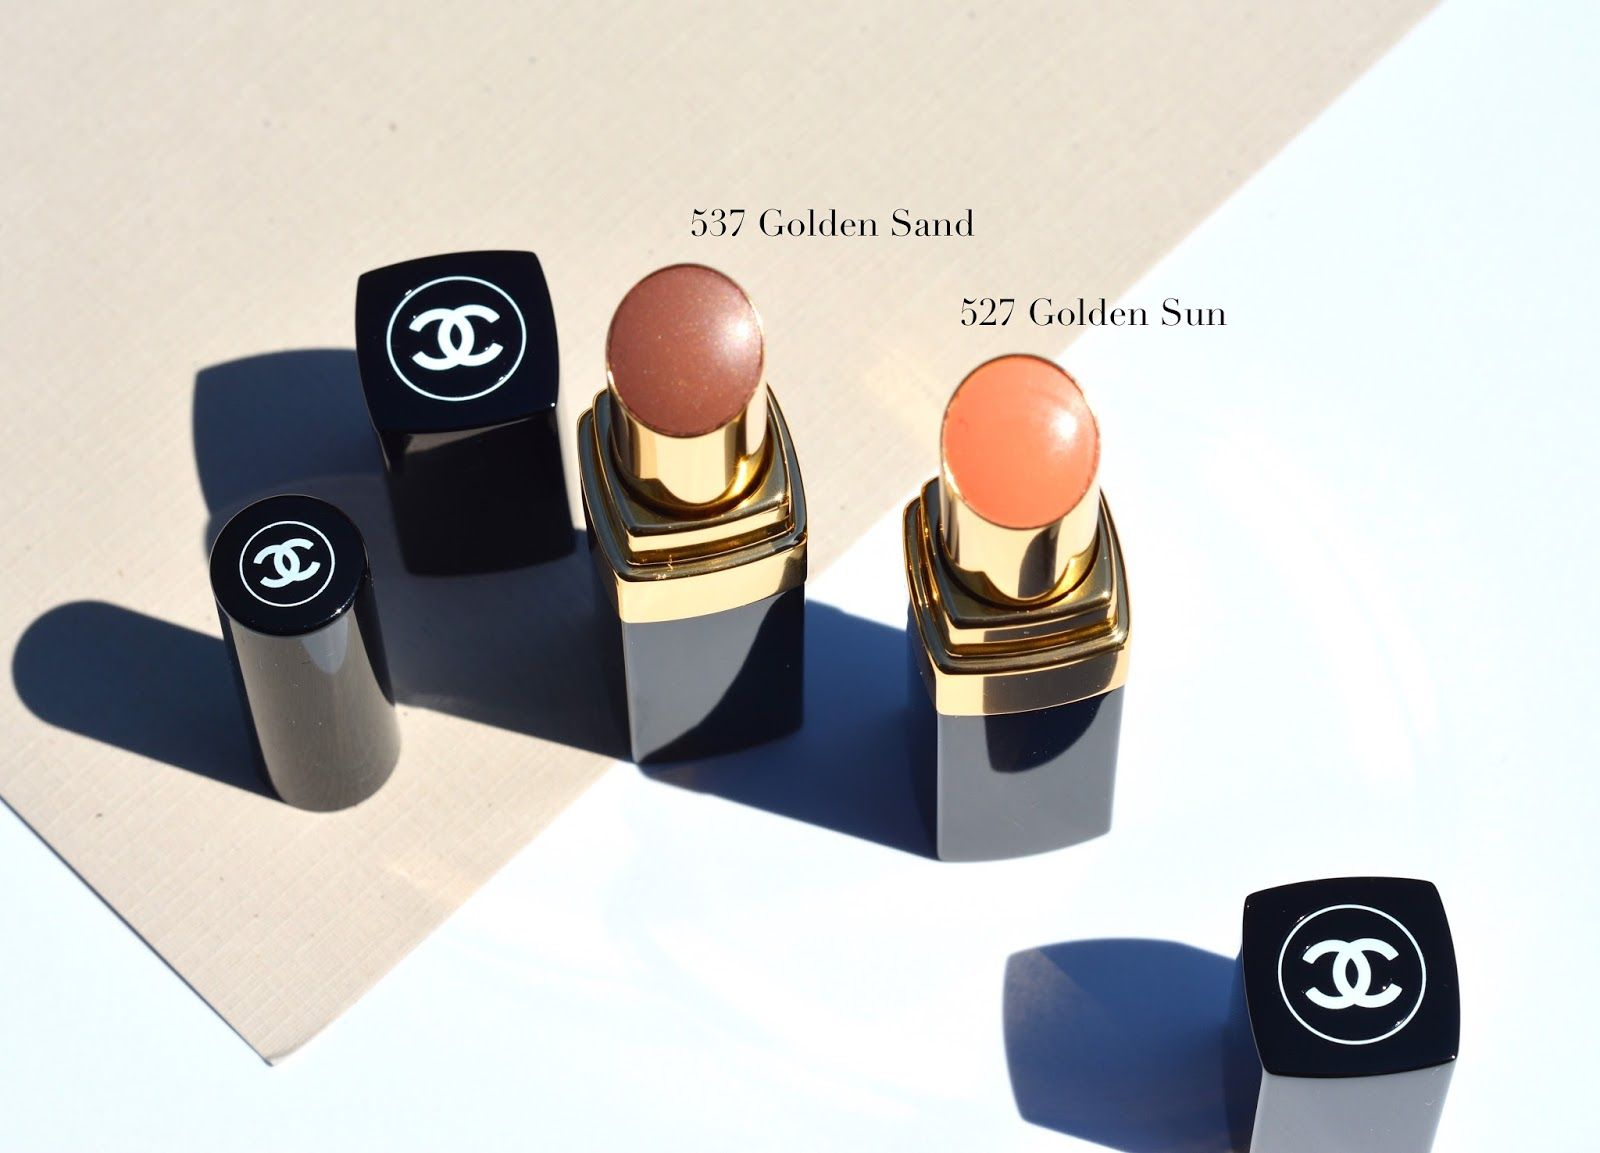 Beauty marker chanel rouge coco lipsticks review and swatches - Chanel Summer 2017 Cruise Collection Makeup Review Swatches Rouge Coco Shine Golden Sun Golden Sand